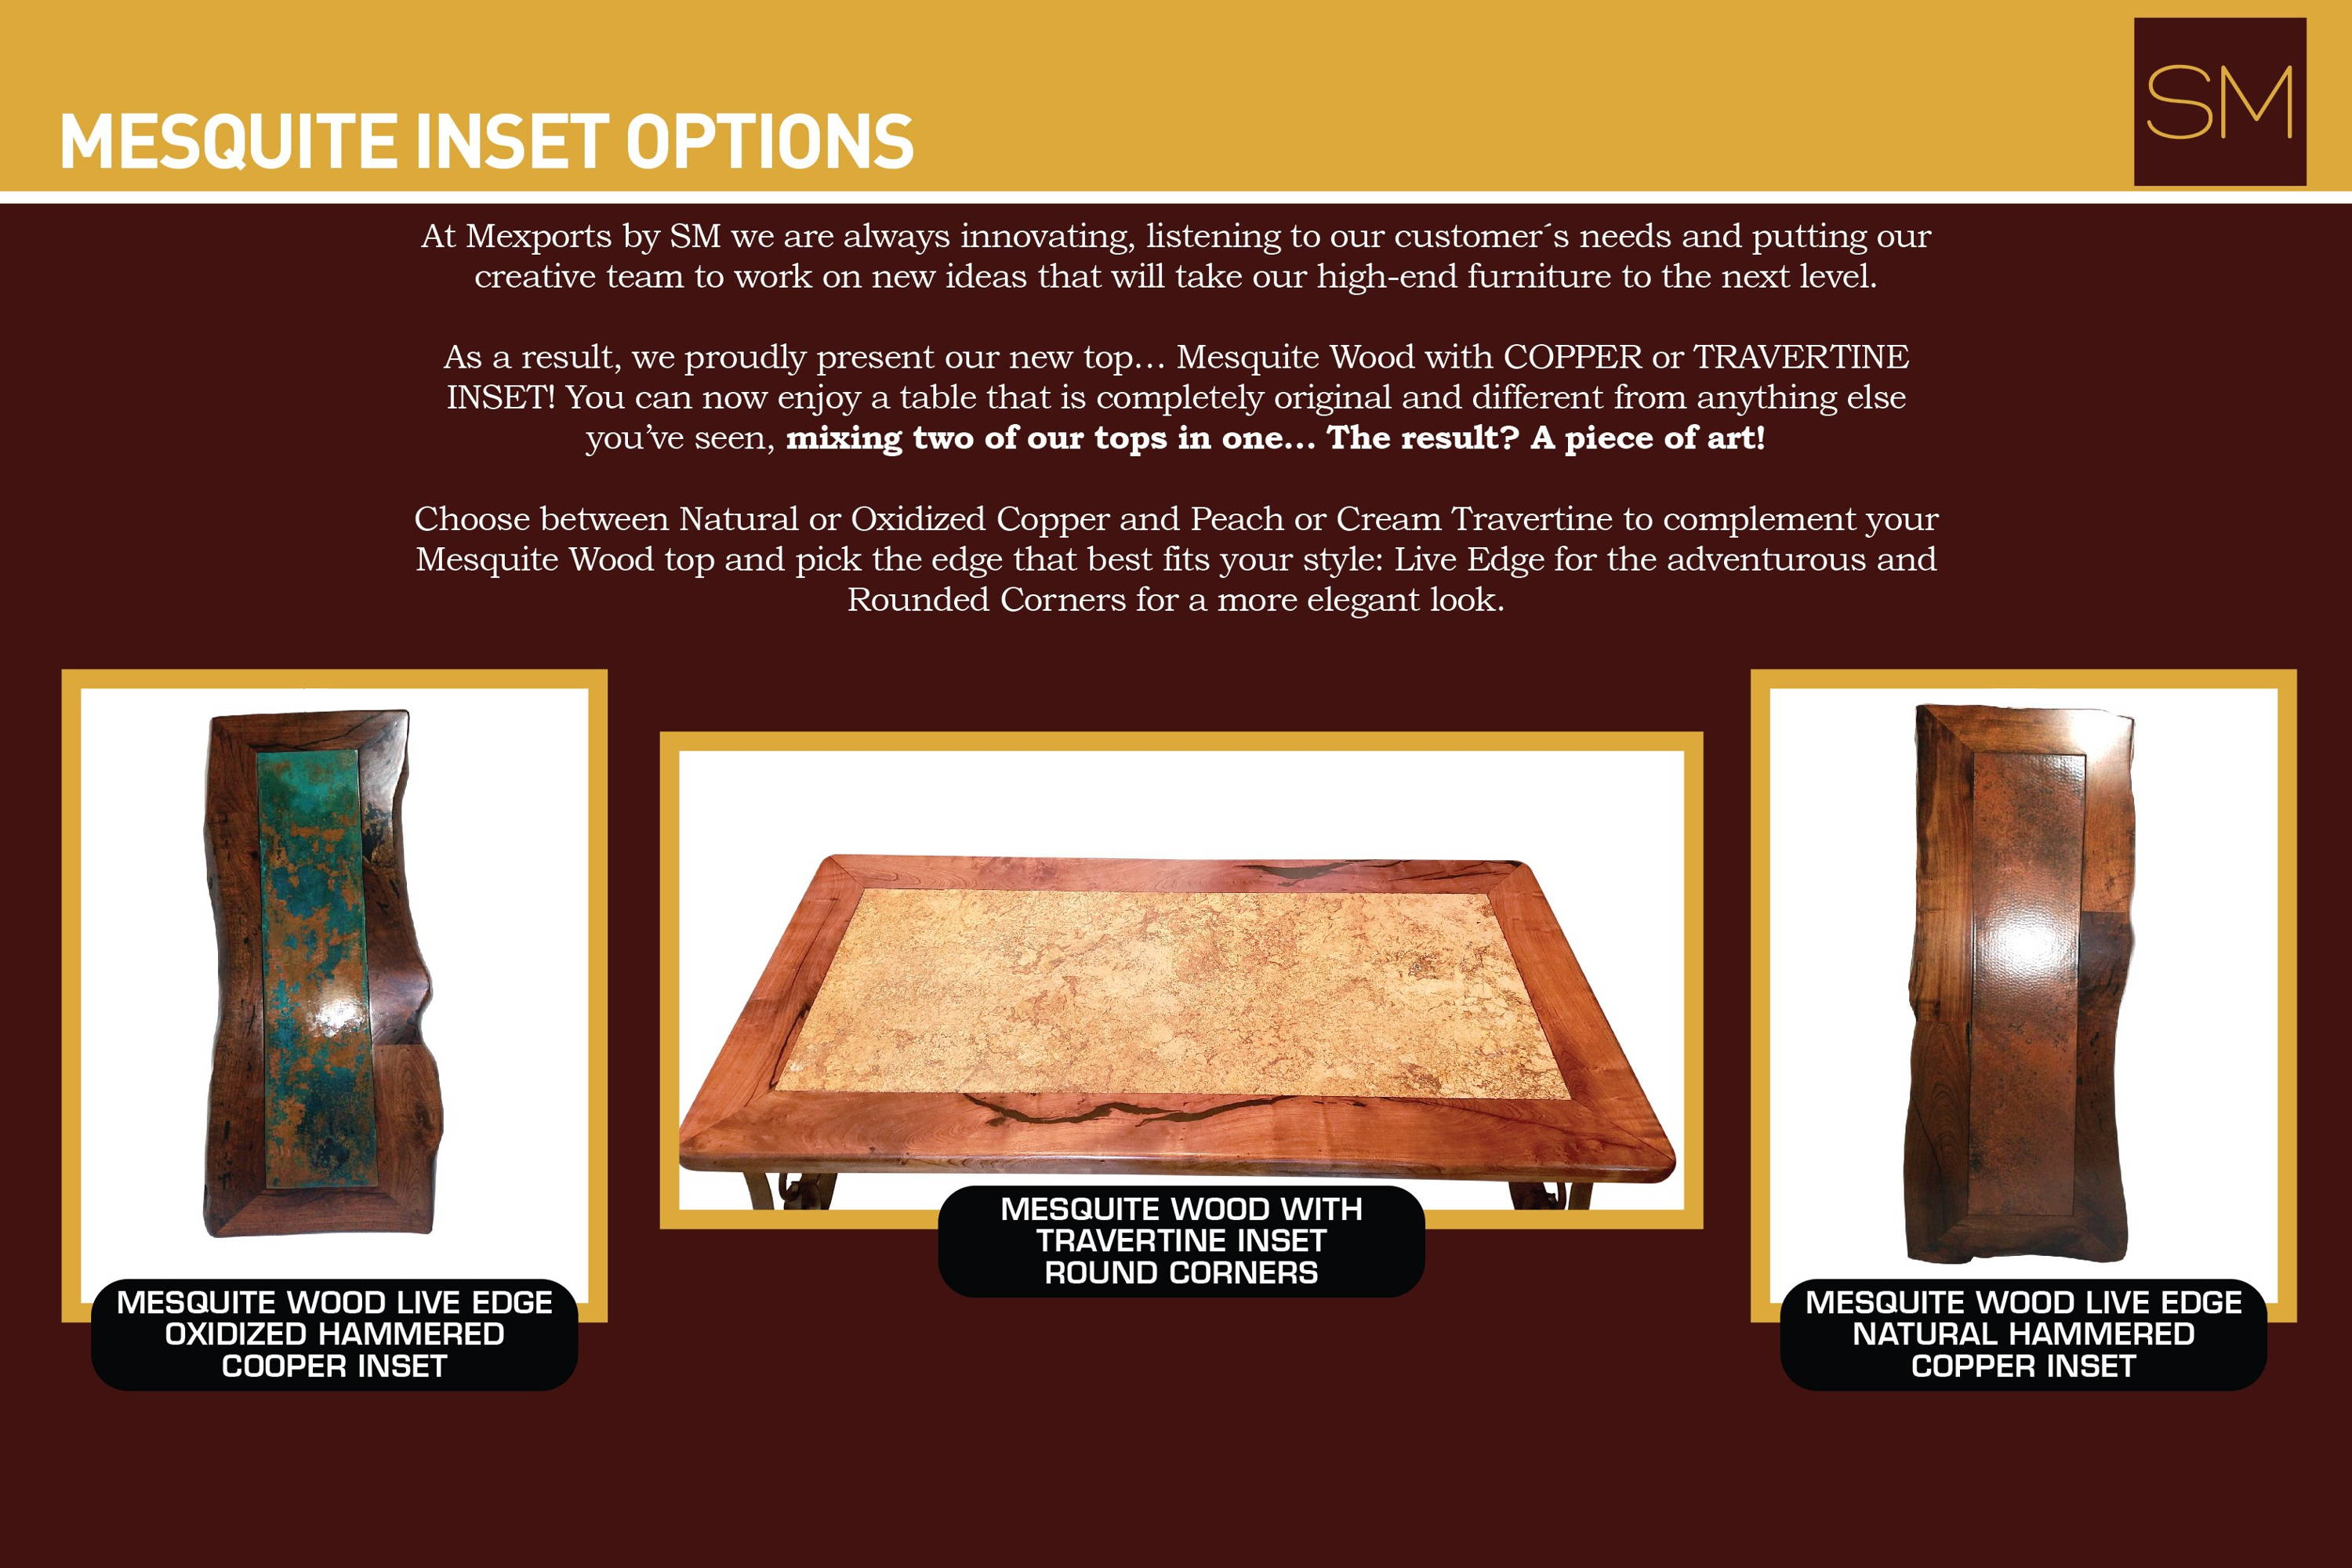 Mesquite inset options ranging from mesquite wood live edge with oxidized hammered copper inset, mesquite wood with travertine inset round corners, mesquite wood live edge natural hammered copper inset